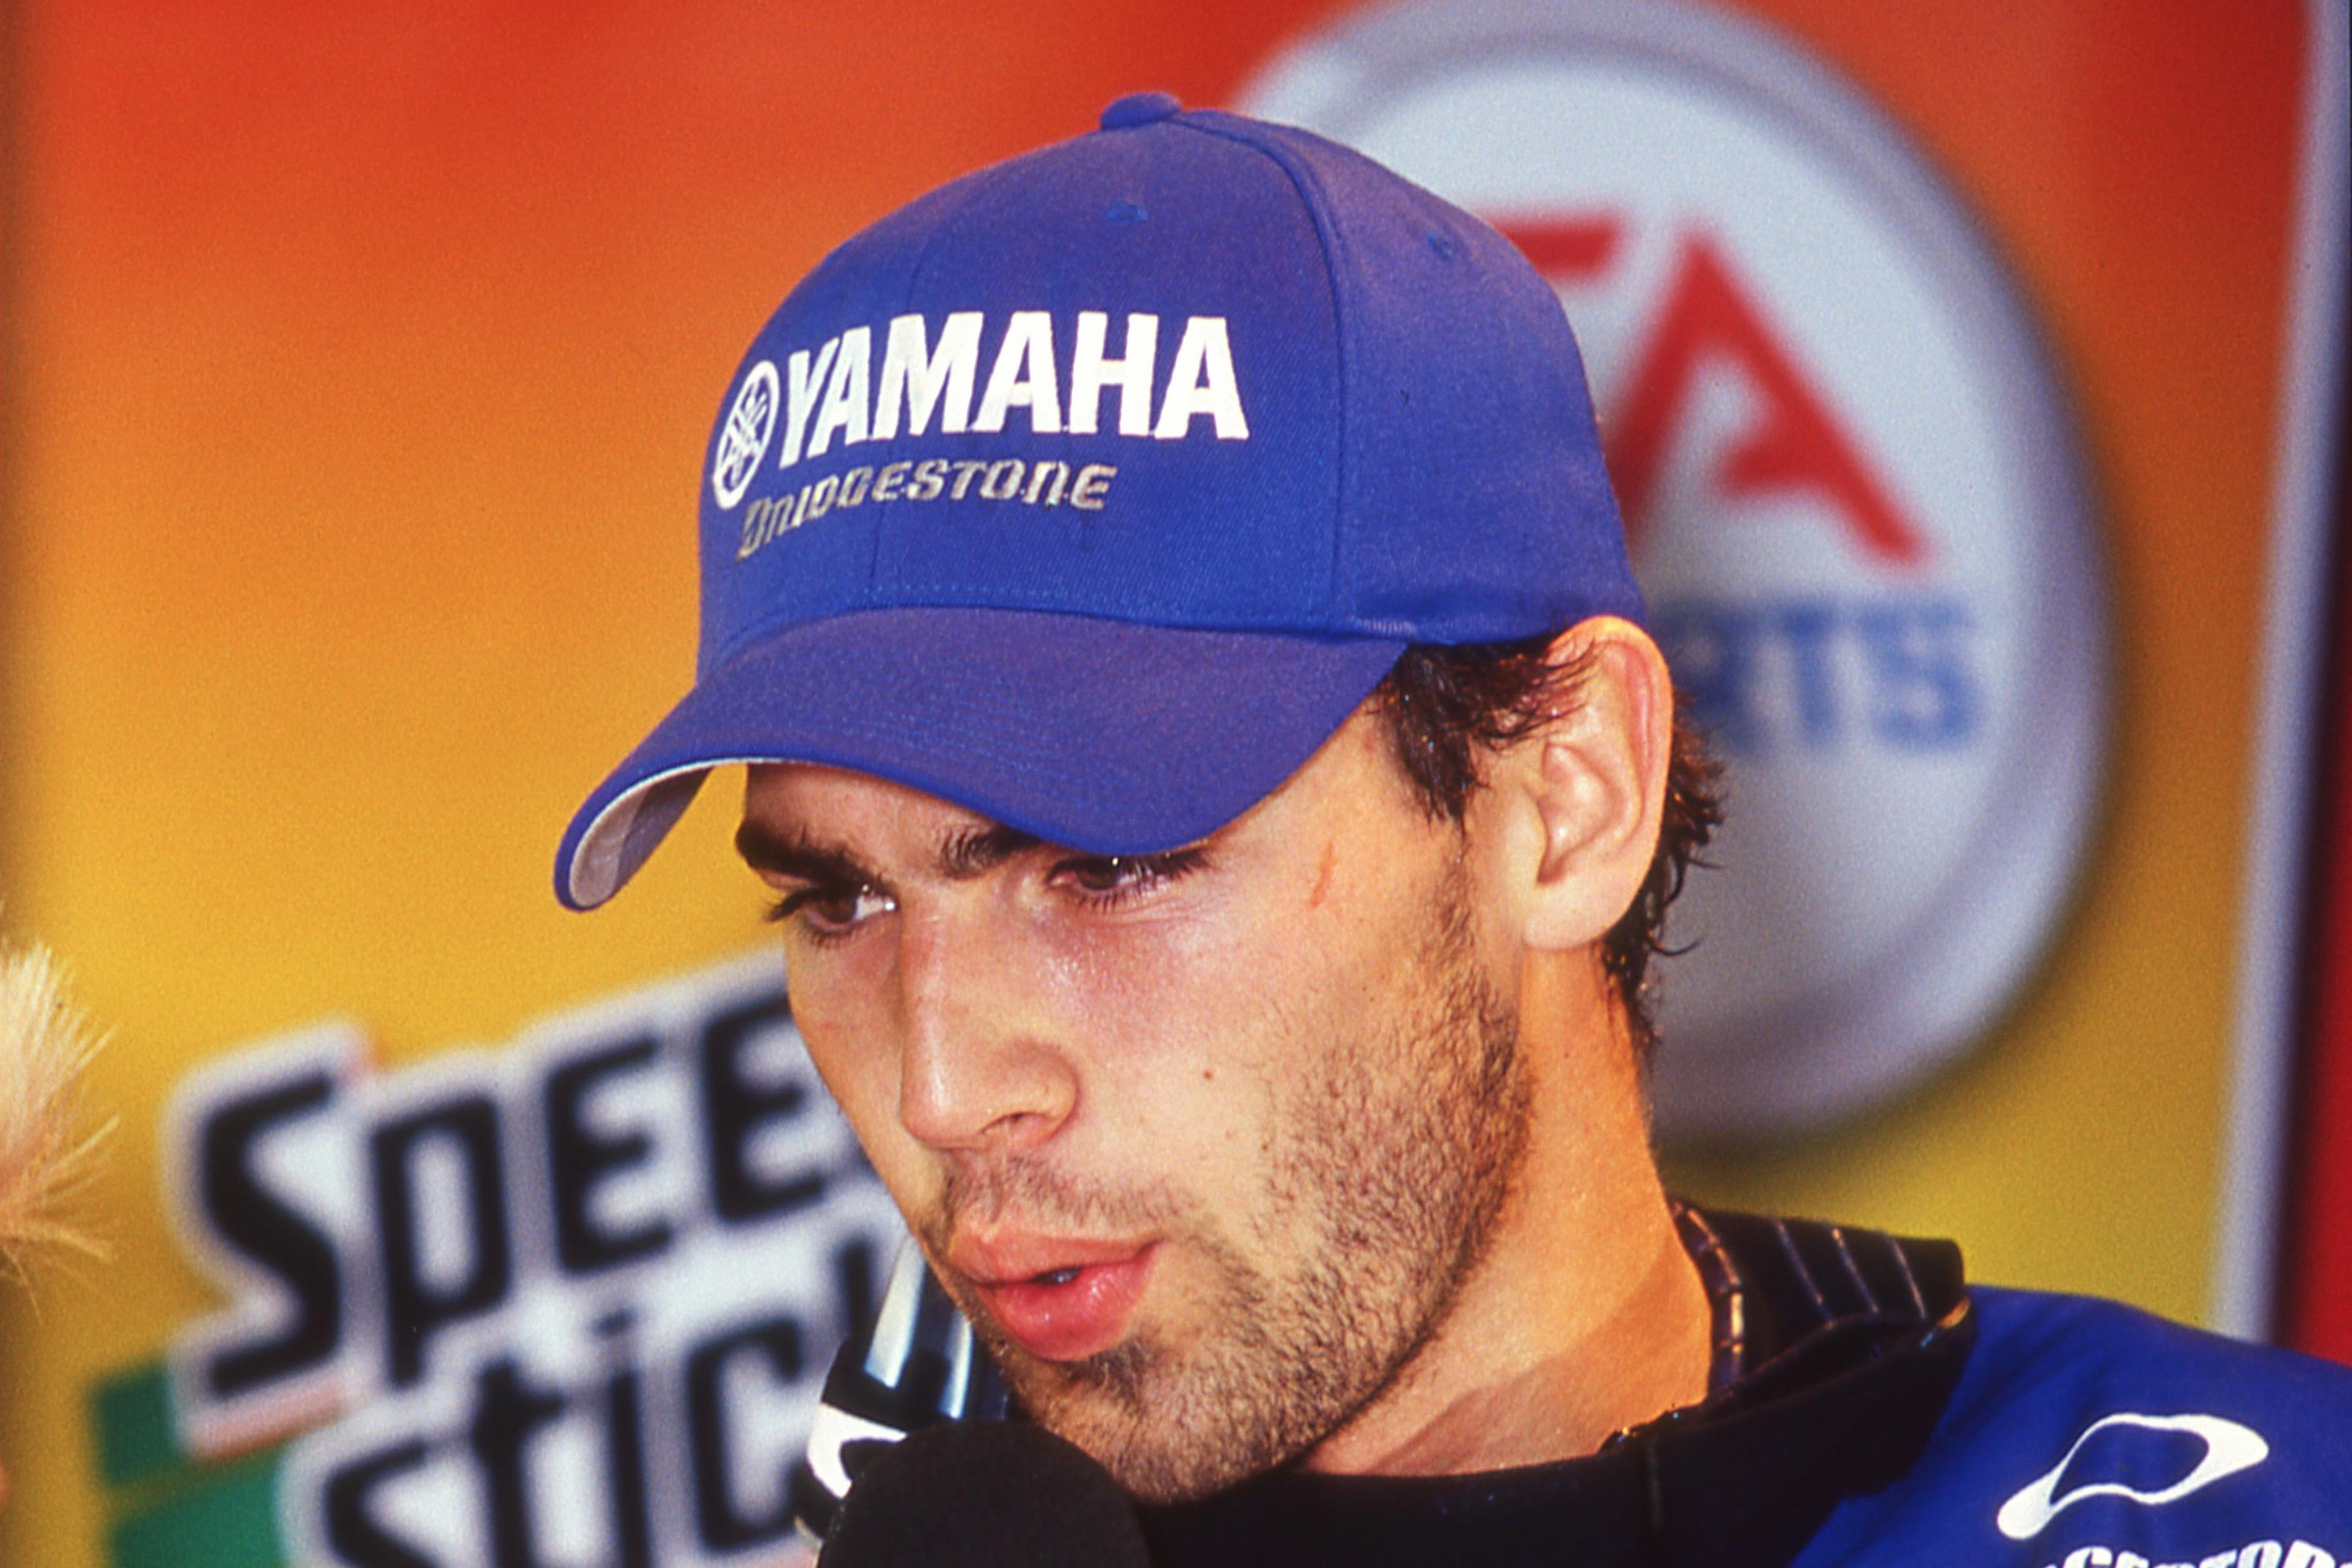 David Vuillemin Remembers the 2002 Indianapolis SX - Racer X Online